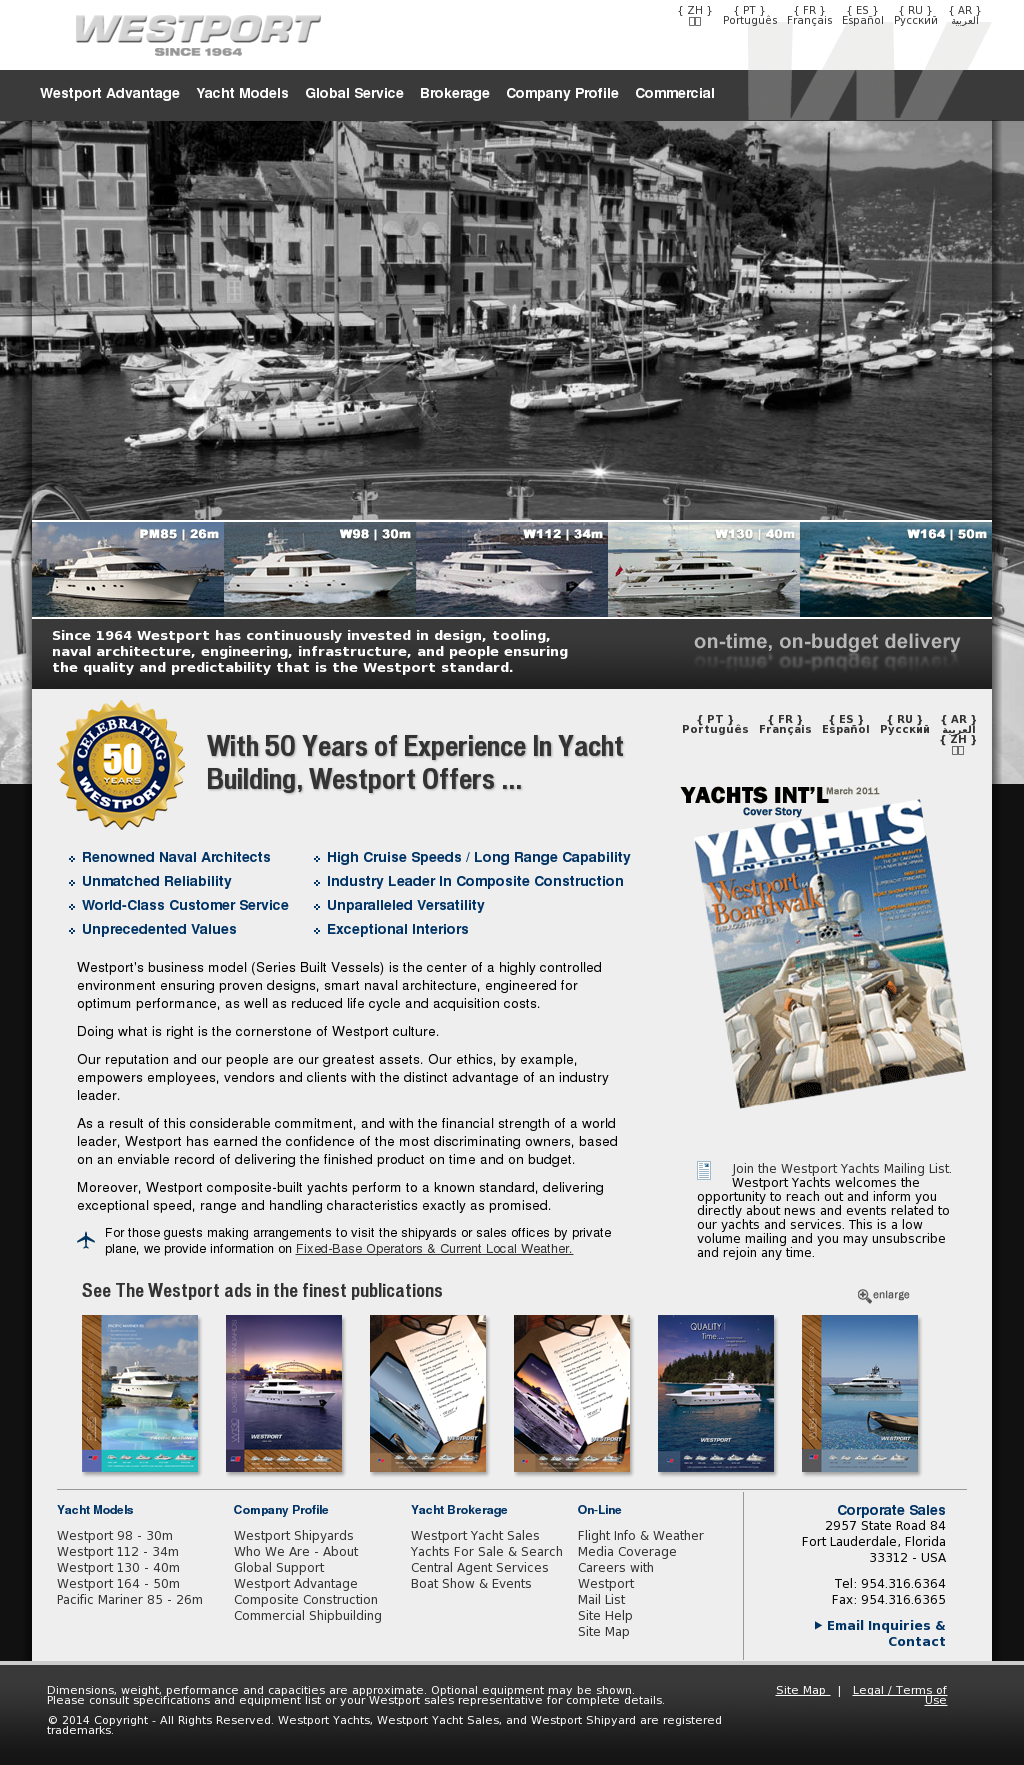 Westport Yachts Competitors, Revenue and Employees - Owler